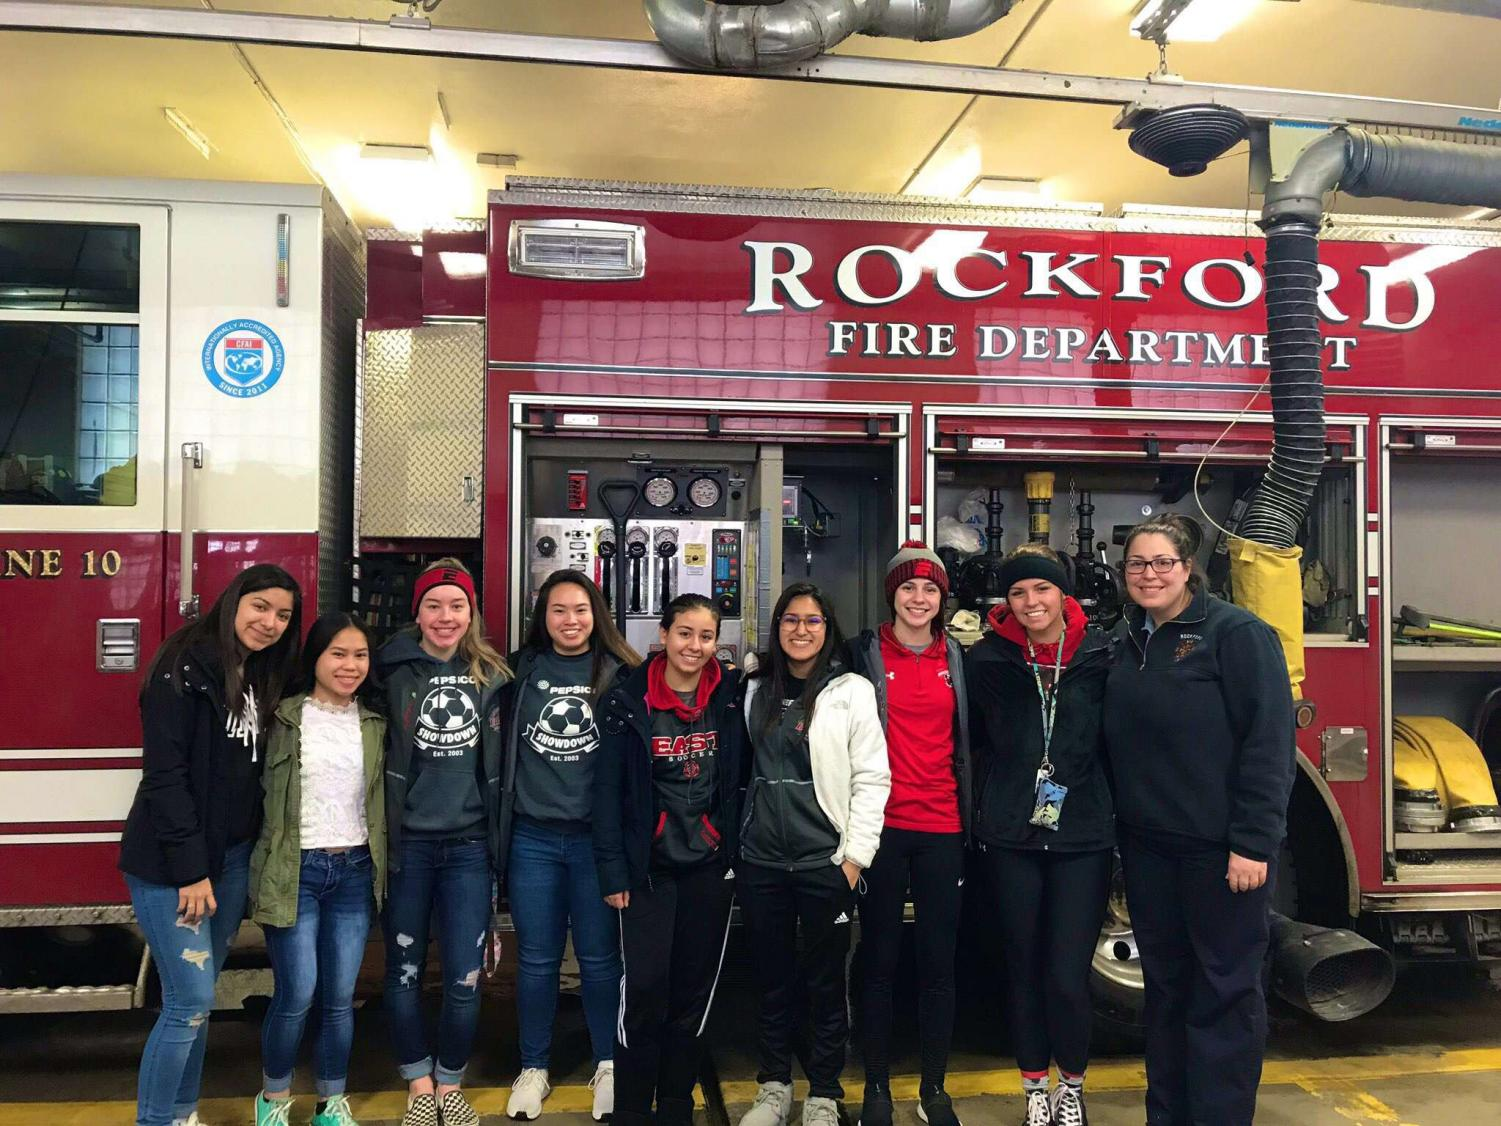 The team delivered donuts to Rockford Fire Stations 3, 10, and 11.